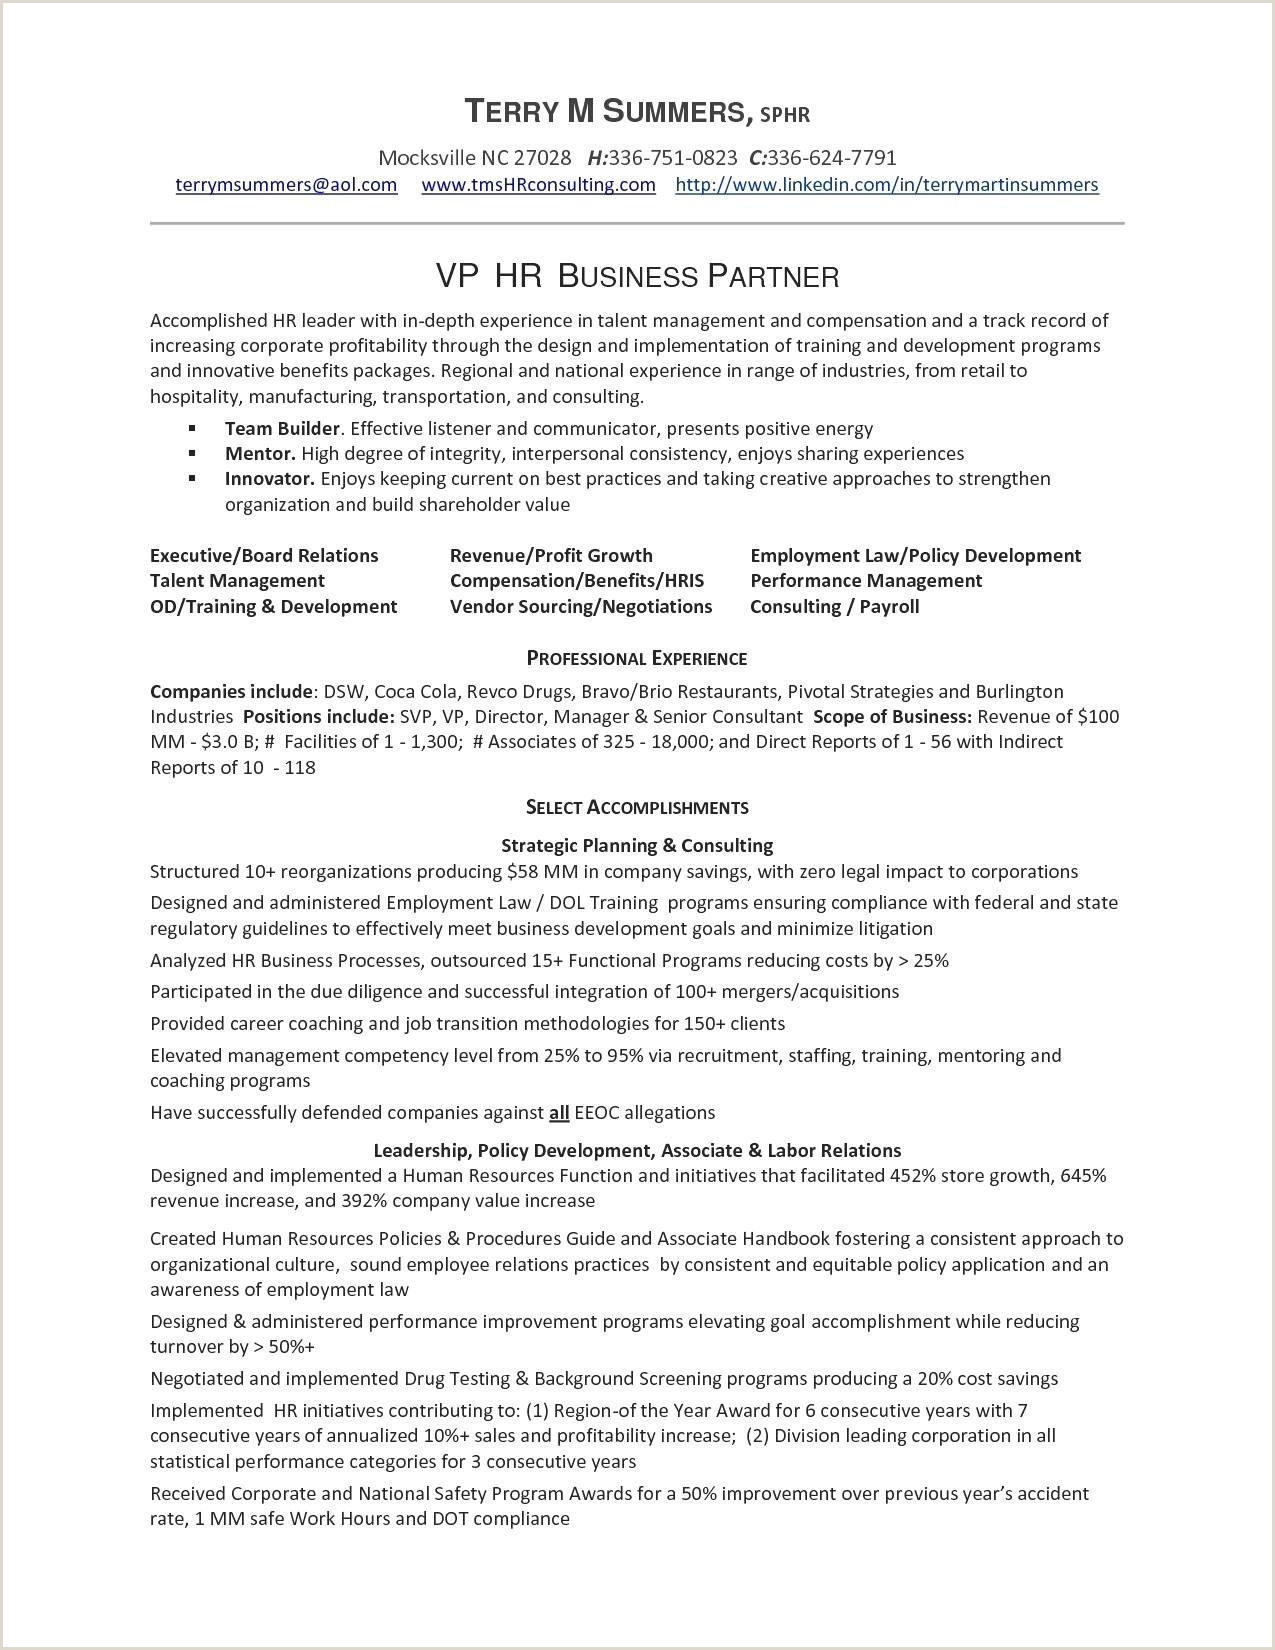 Cv Samples For Job Of Accountant Resume Samples For Accounting Jobs In India Valid Resume